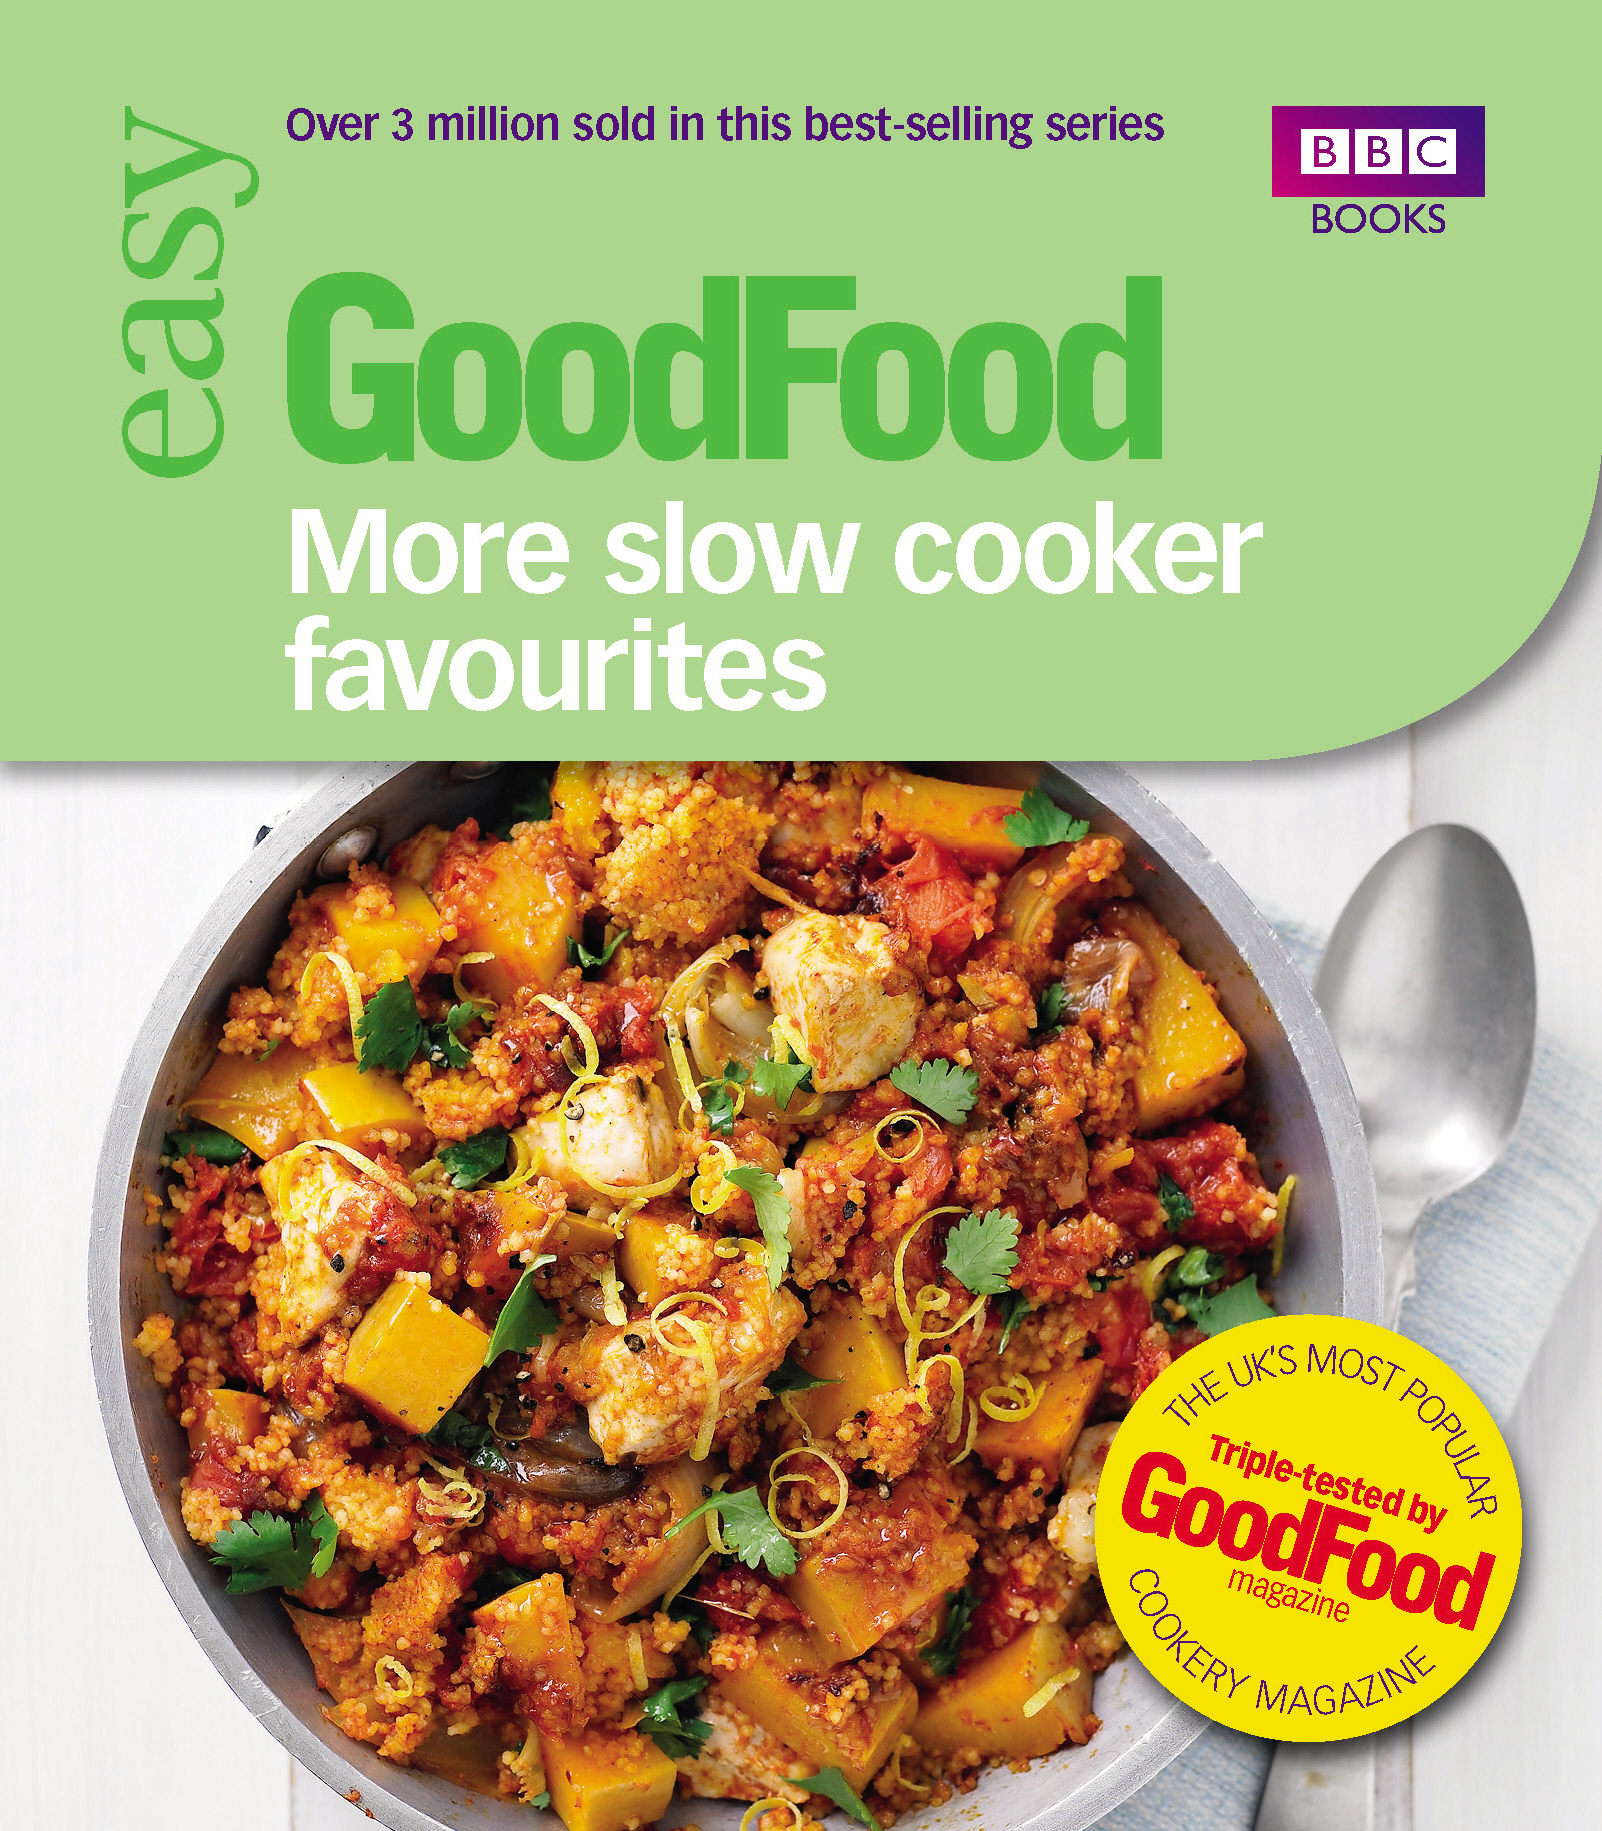 Good Food: More Slow Cooker Favourites Triple-tested recipes